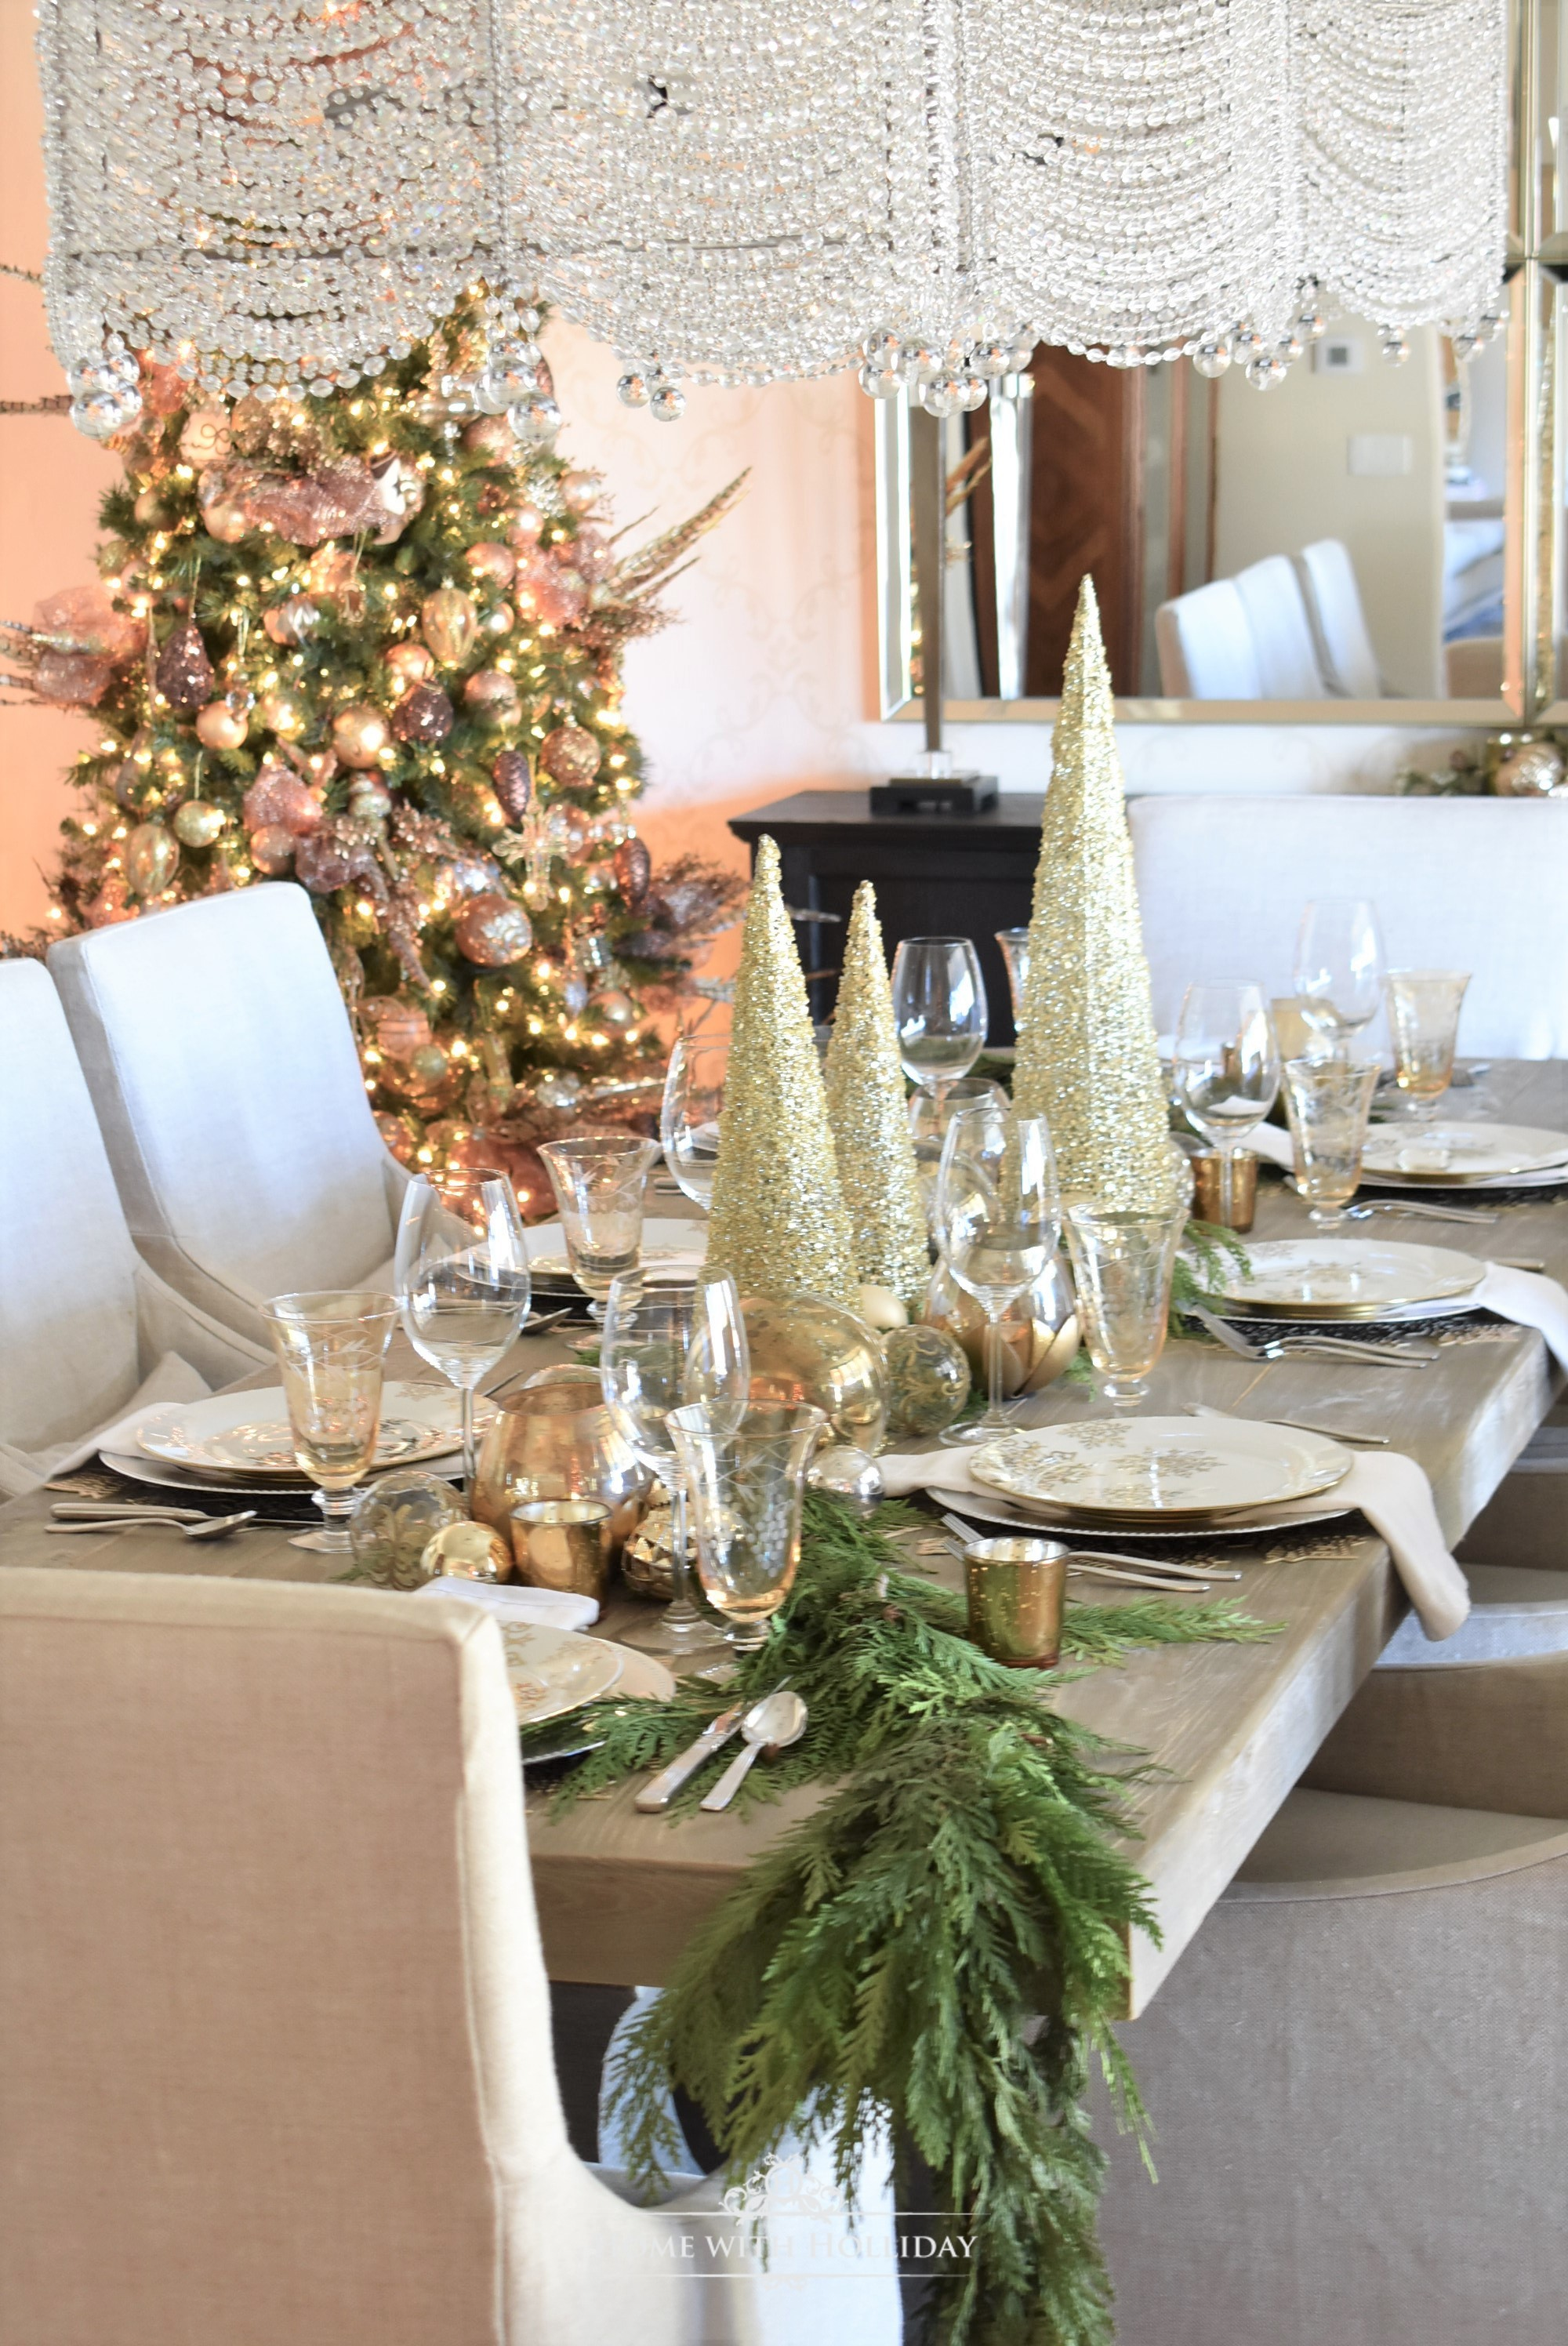 Gold and Silver Snowflake Christmas Table Setting - Home with Holliday